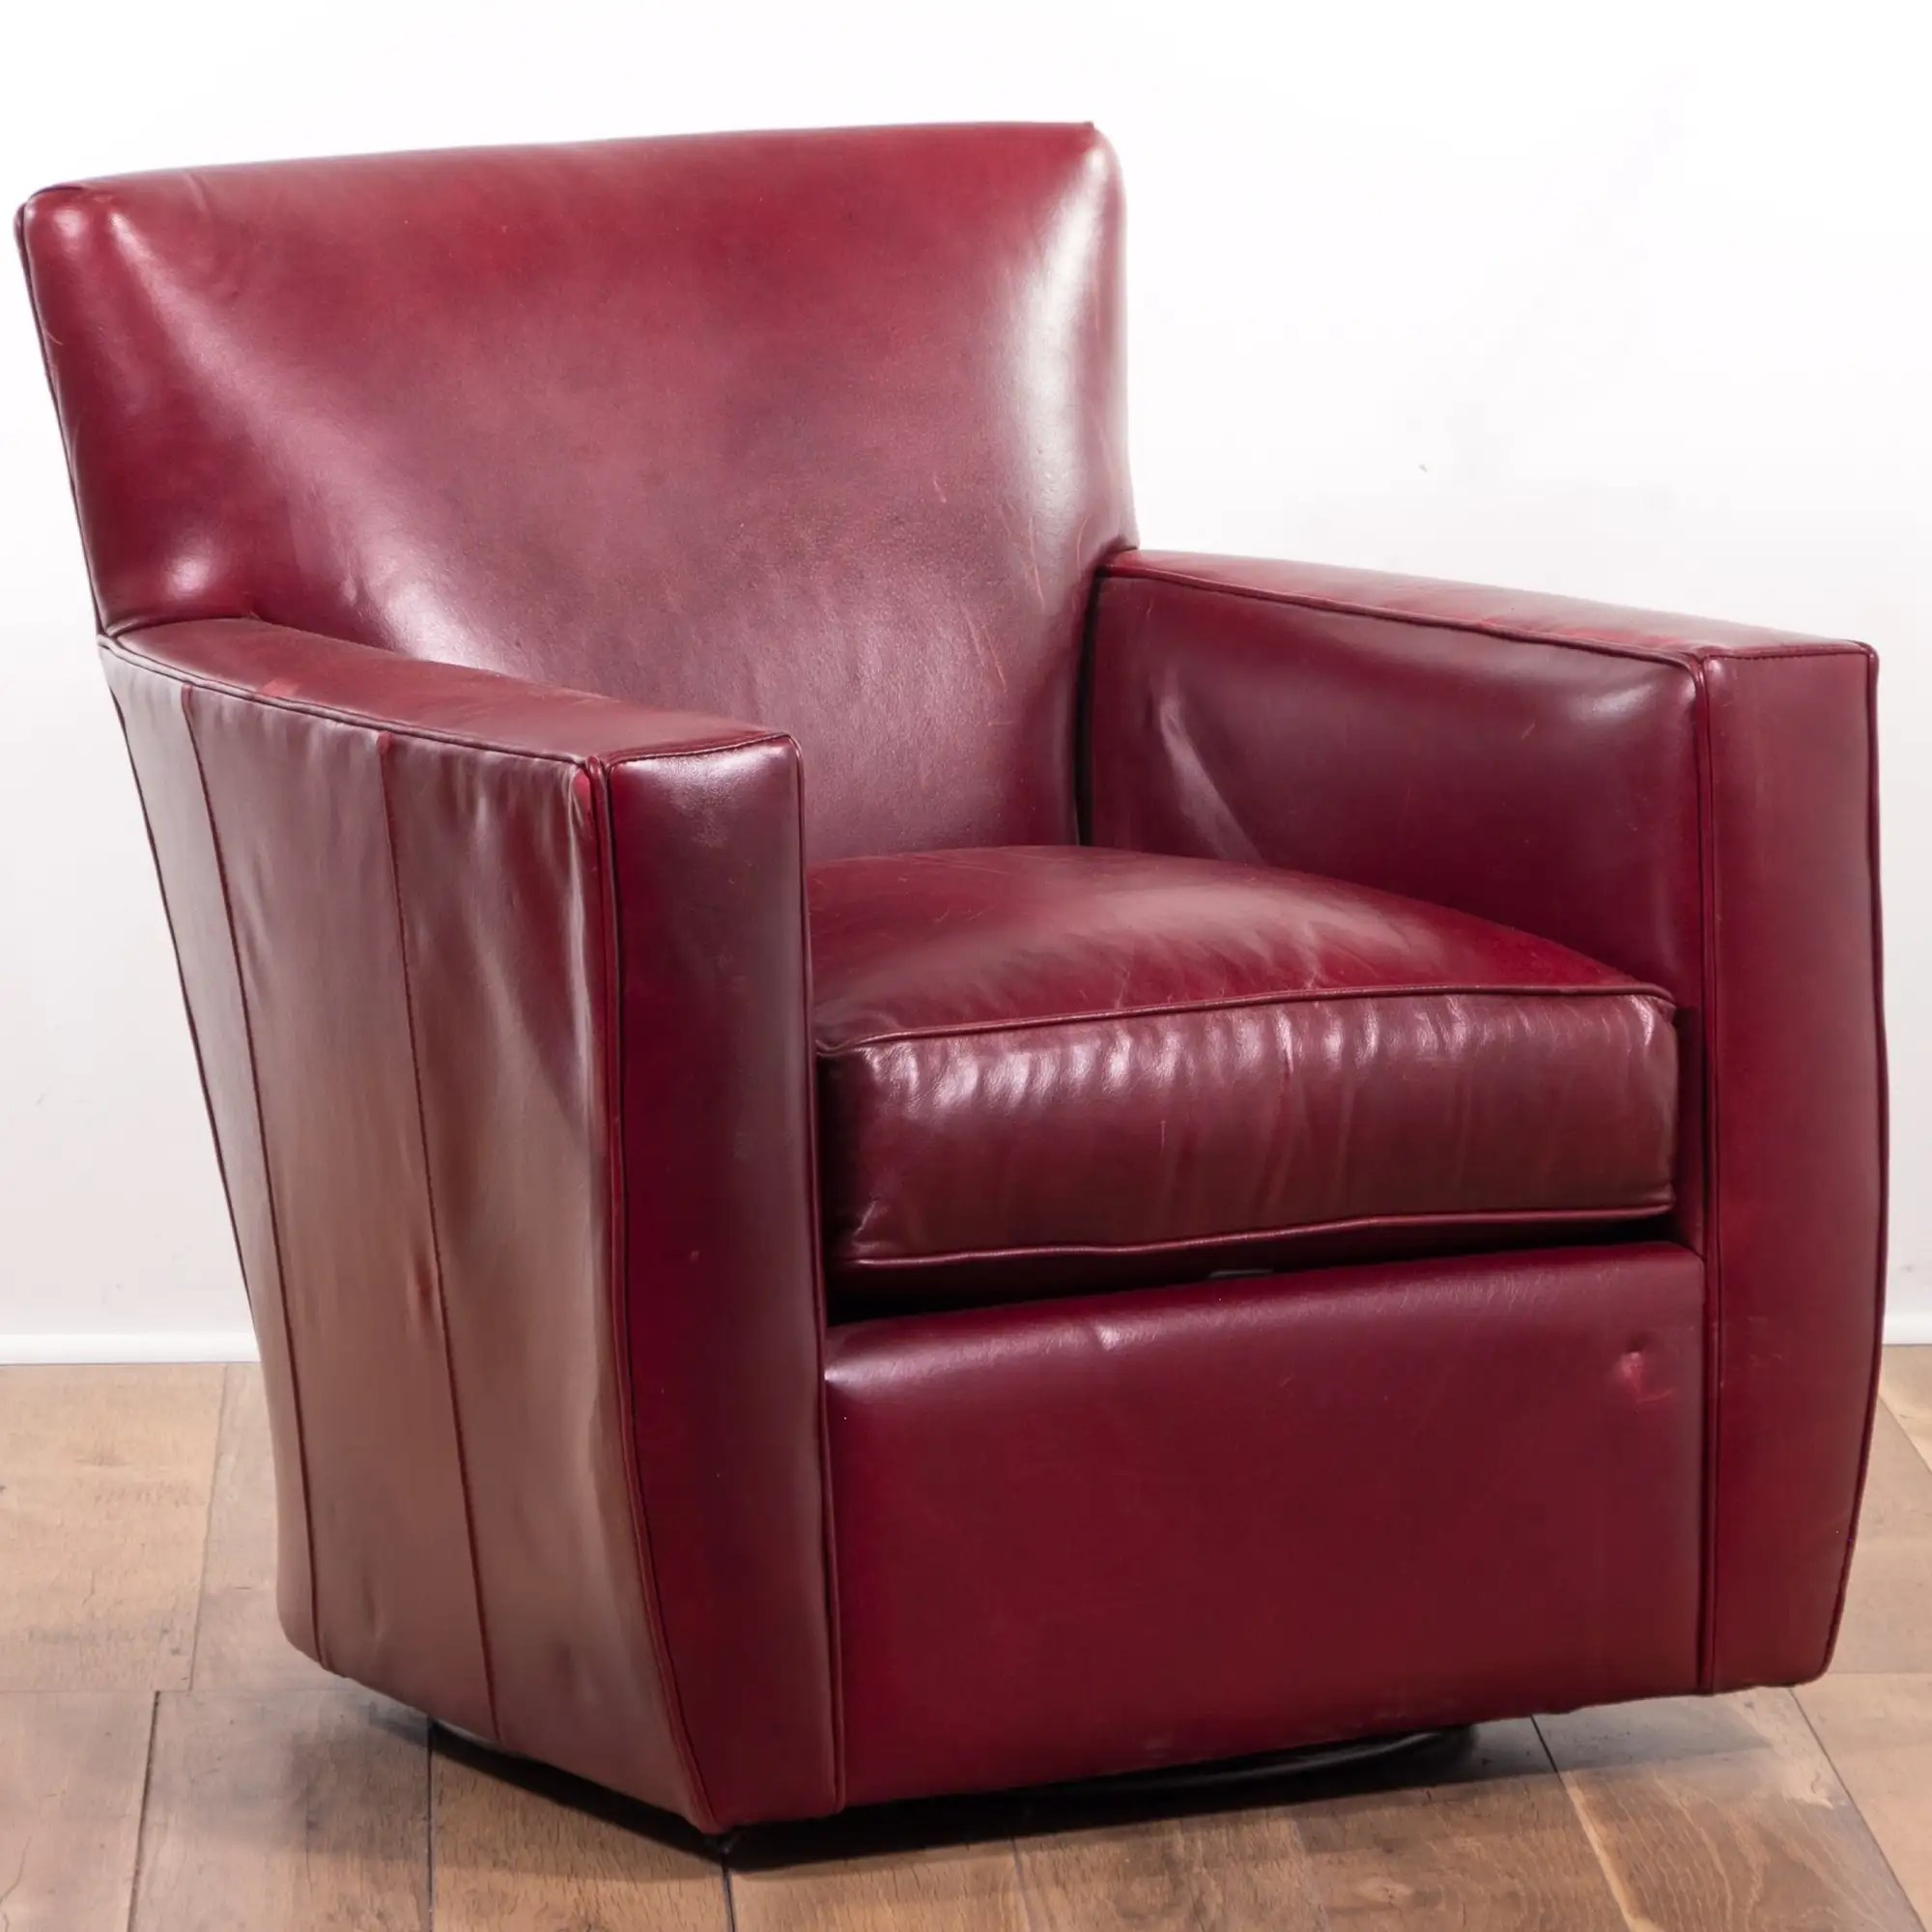 Crate Barrel Red Leather Armchair Loveseat Online Auctions Los Angeles